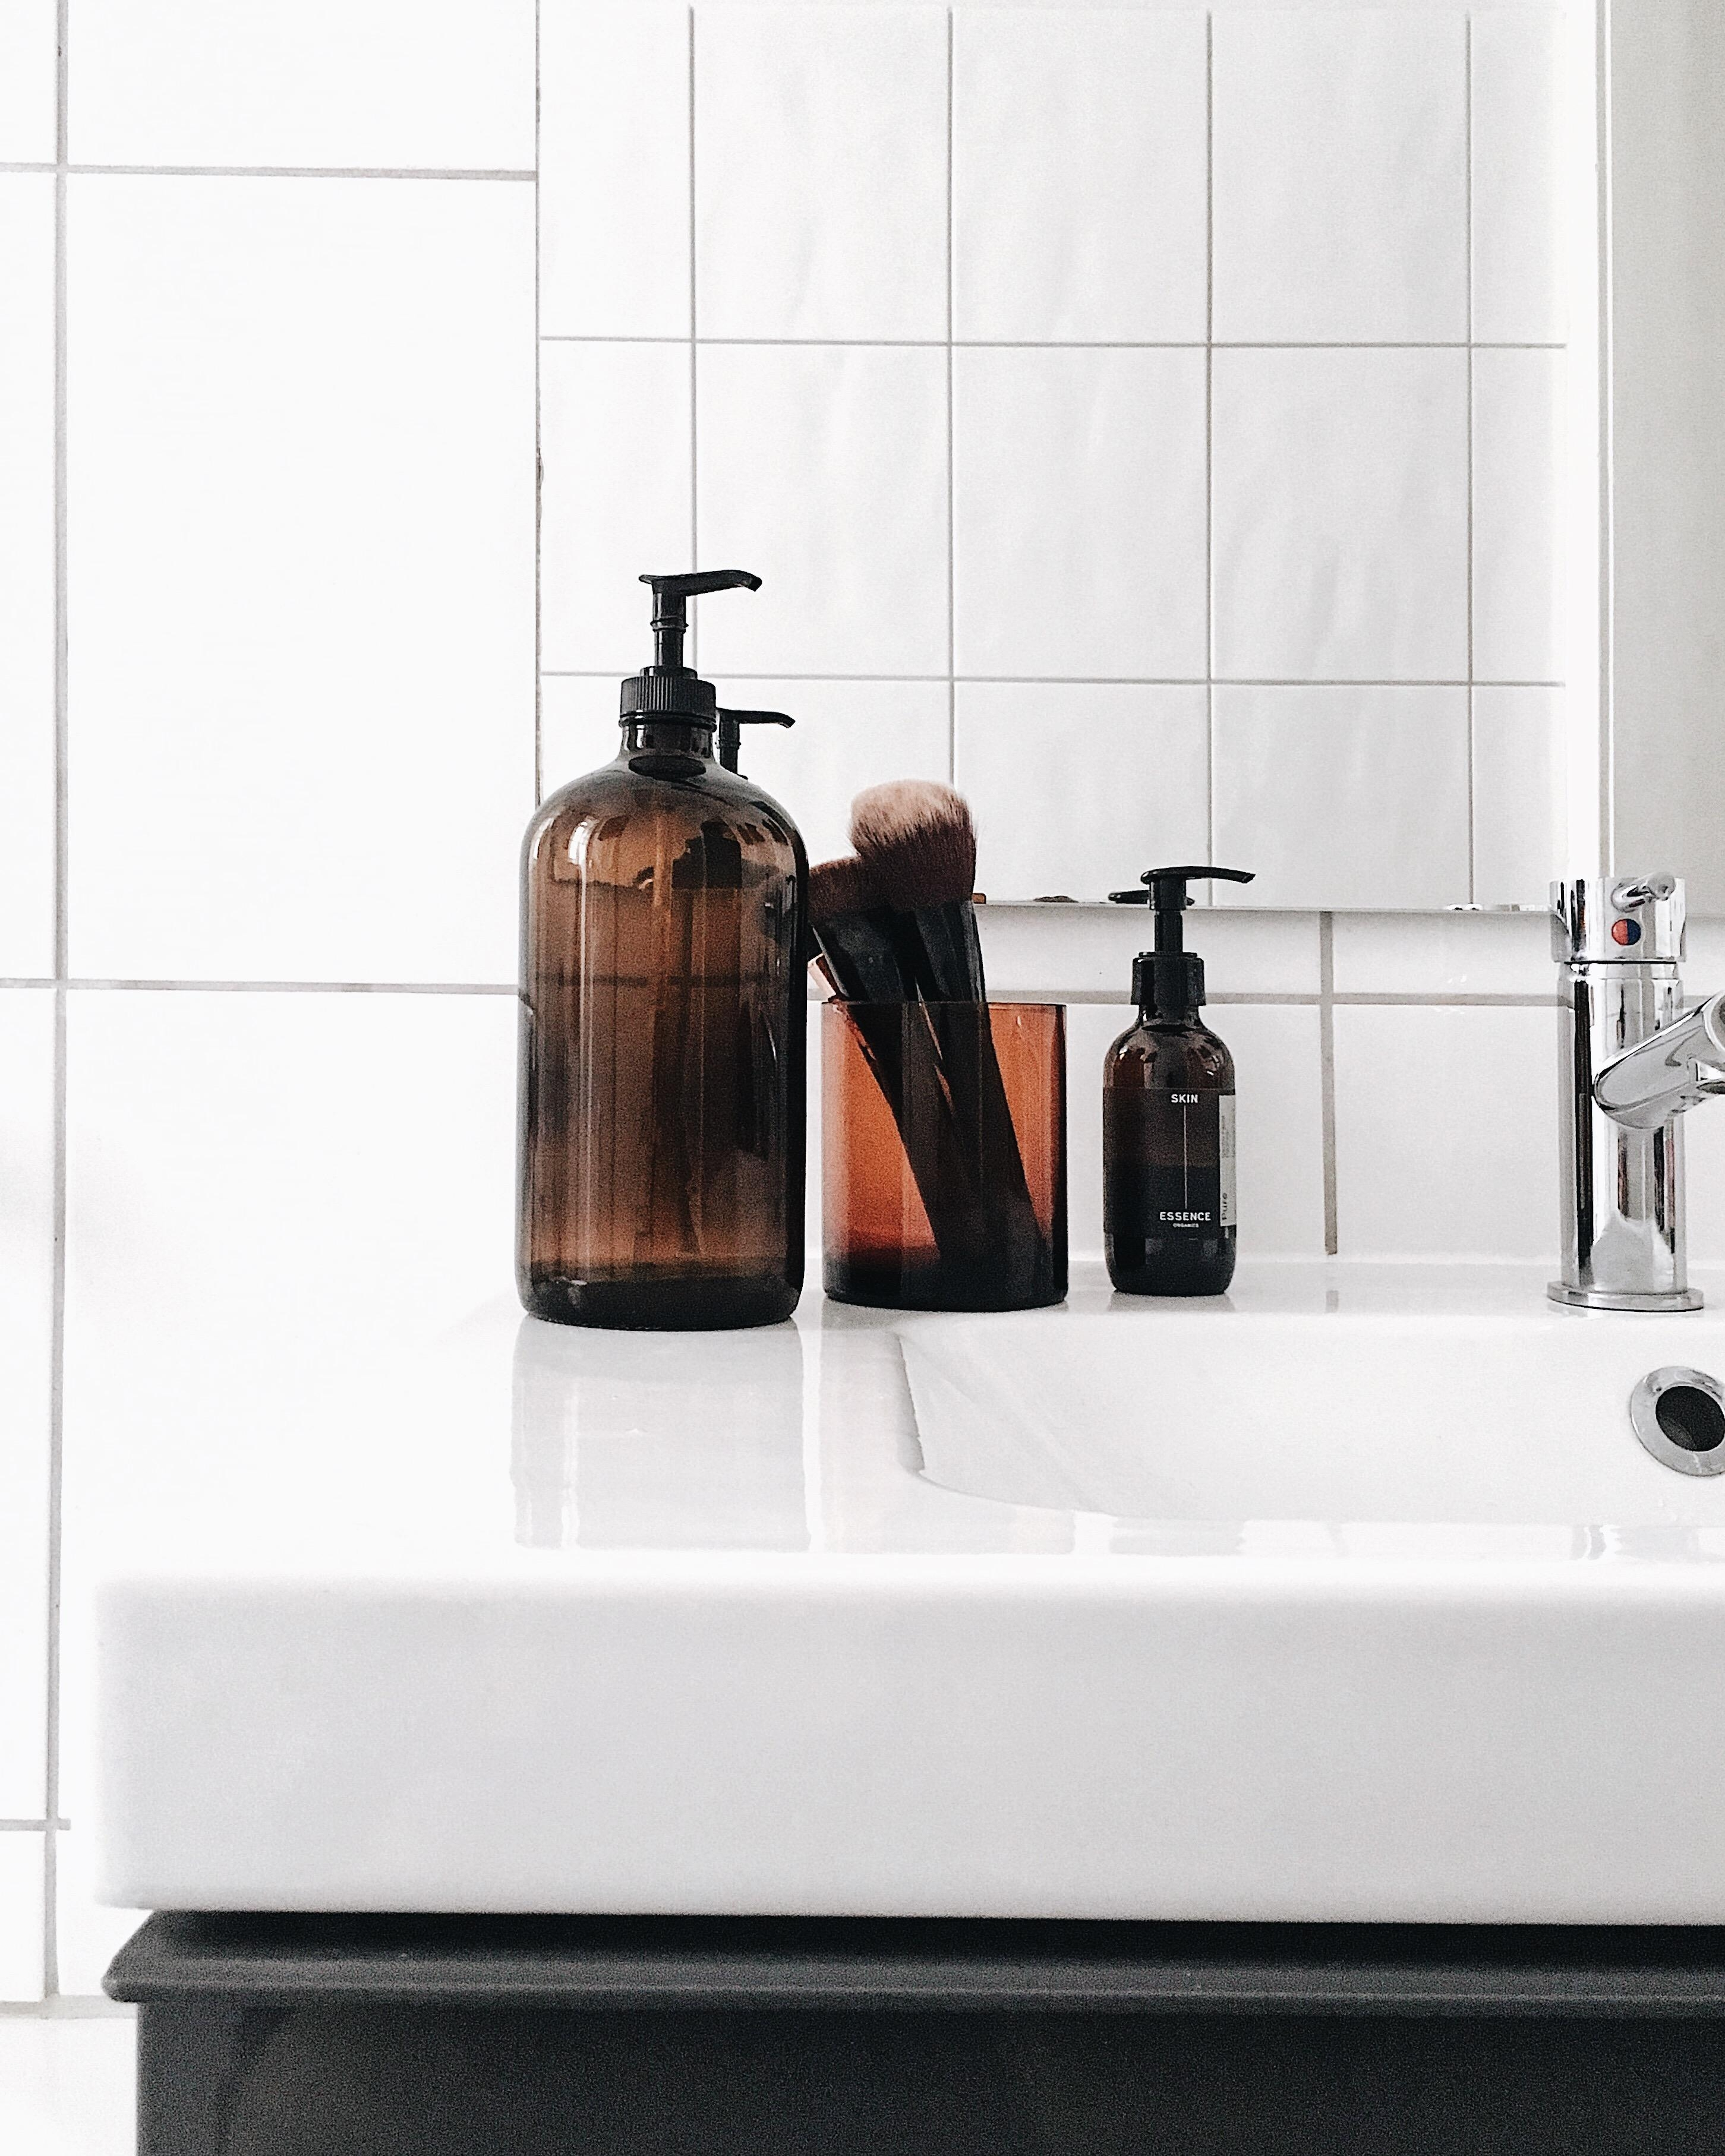 Eye candy   minimalismo design home styleinspiration bathroom badezimmerdeko  e0ee2303 fe35 4504 ac56 608846e21622